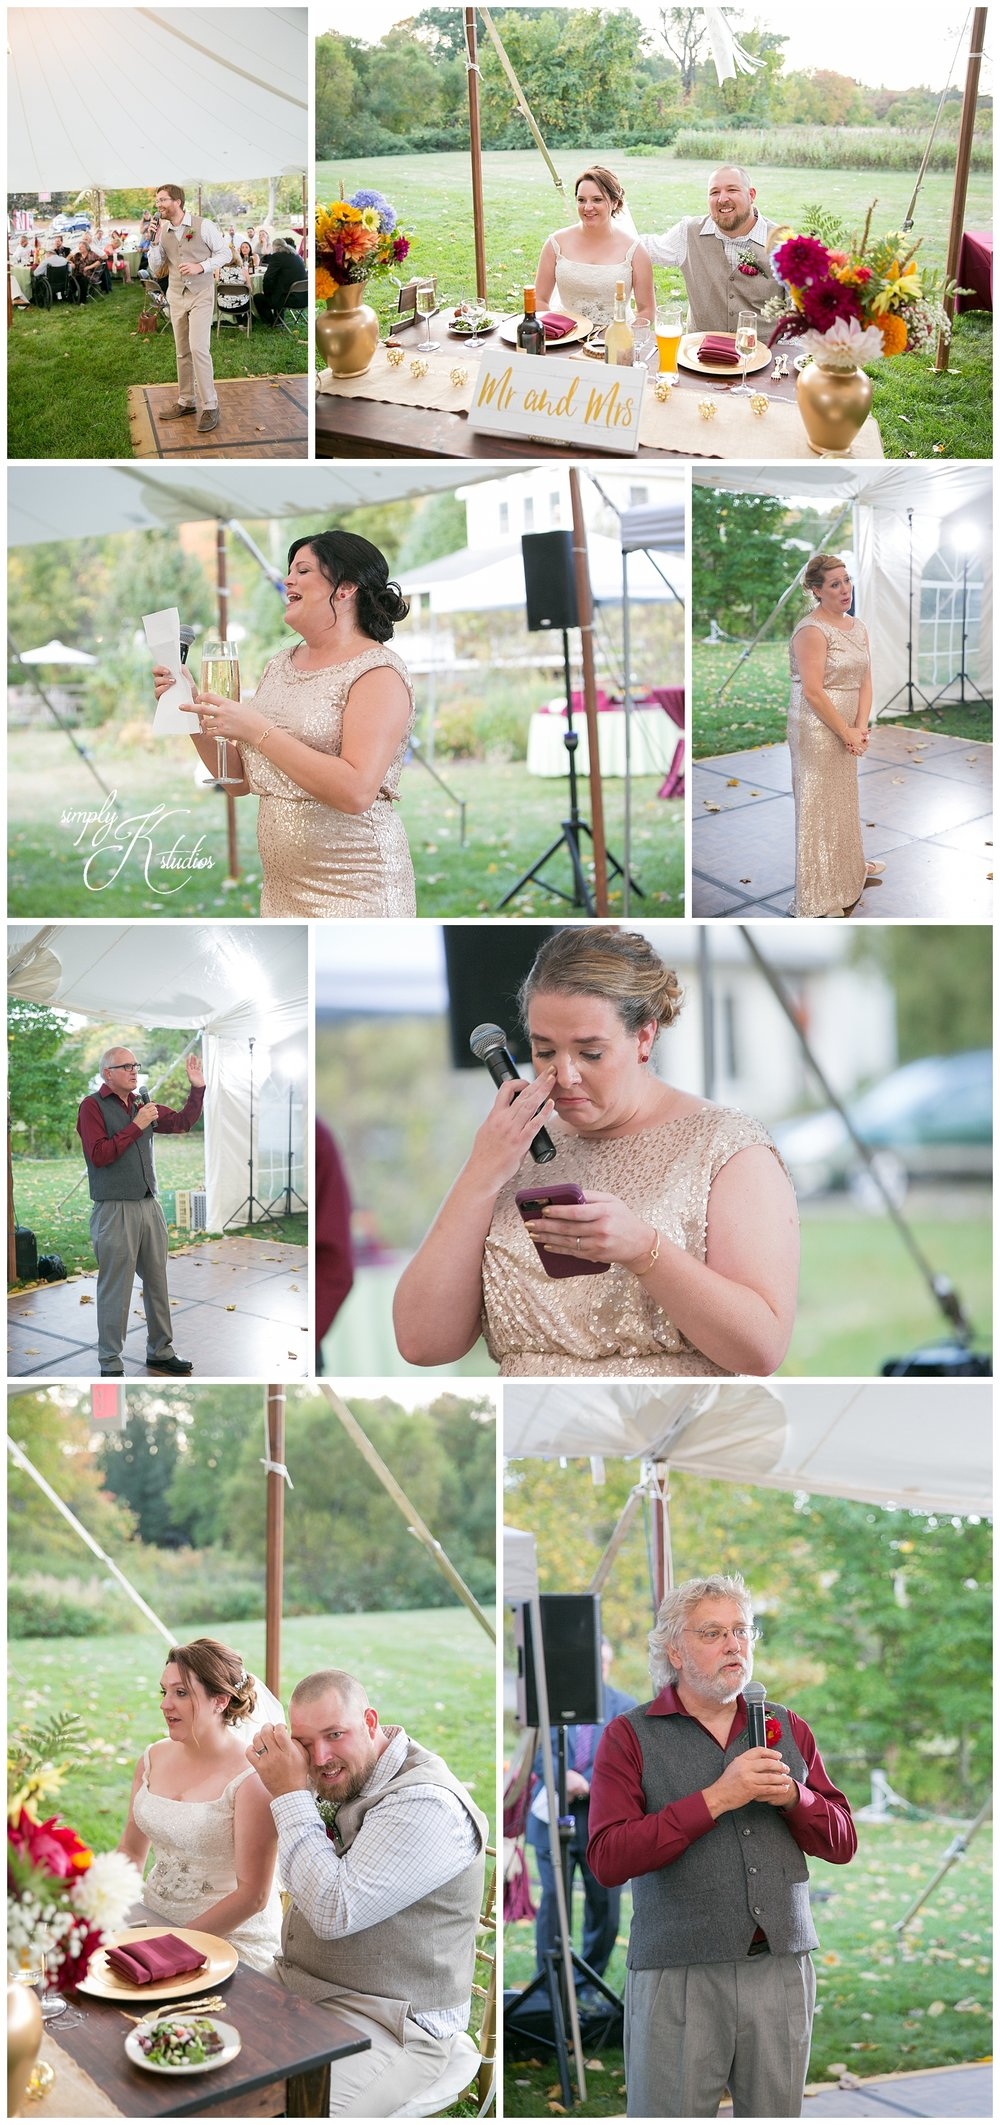 Wedding Receptions at Vitos on the Farm.jpg